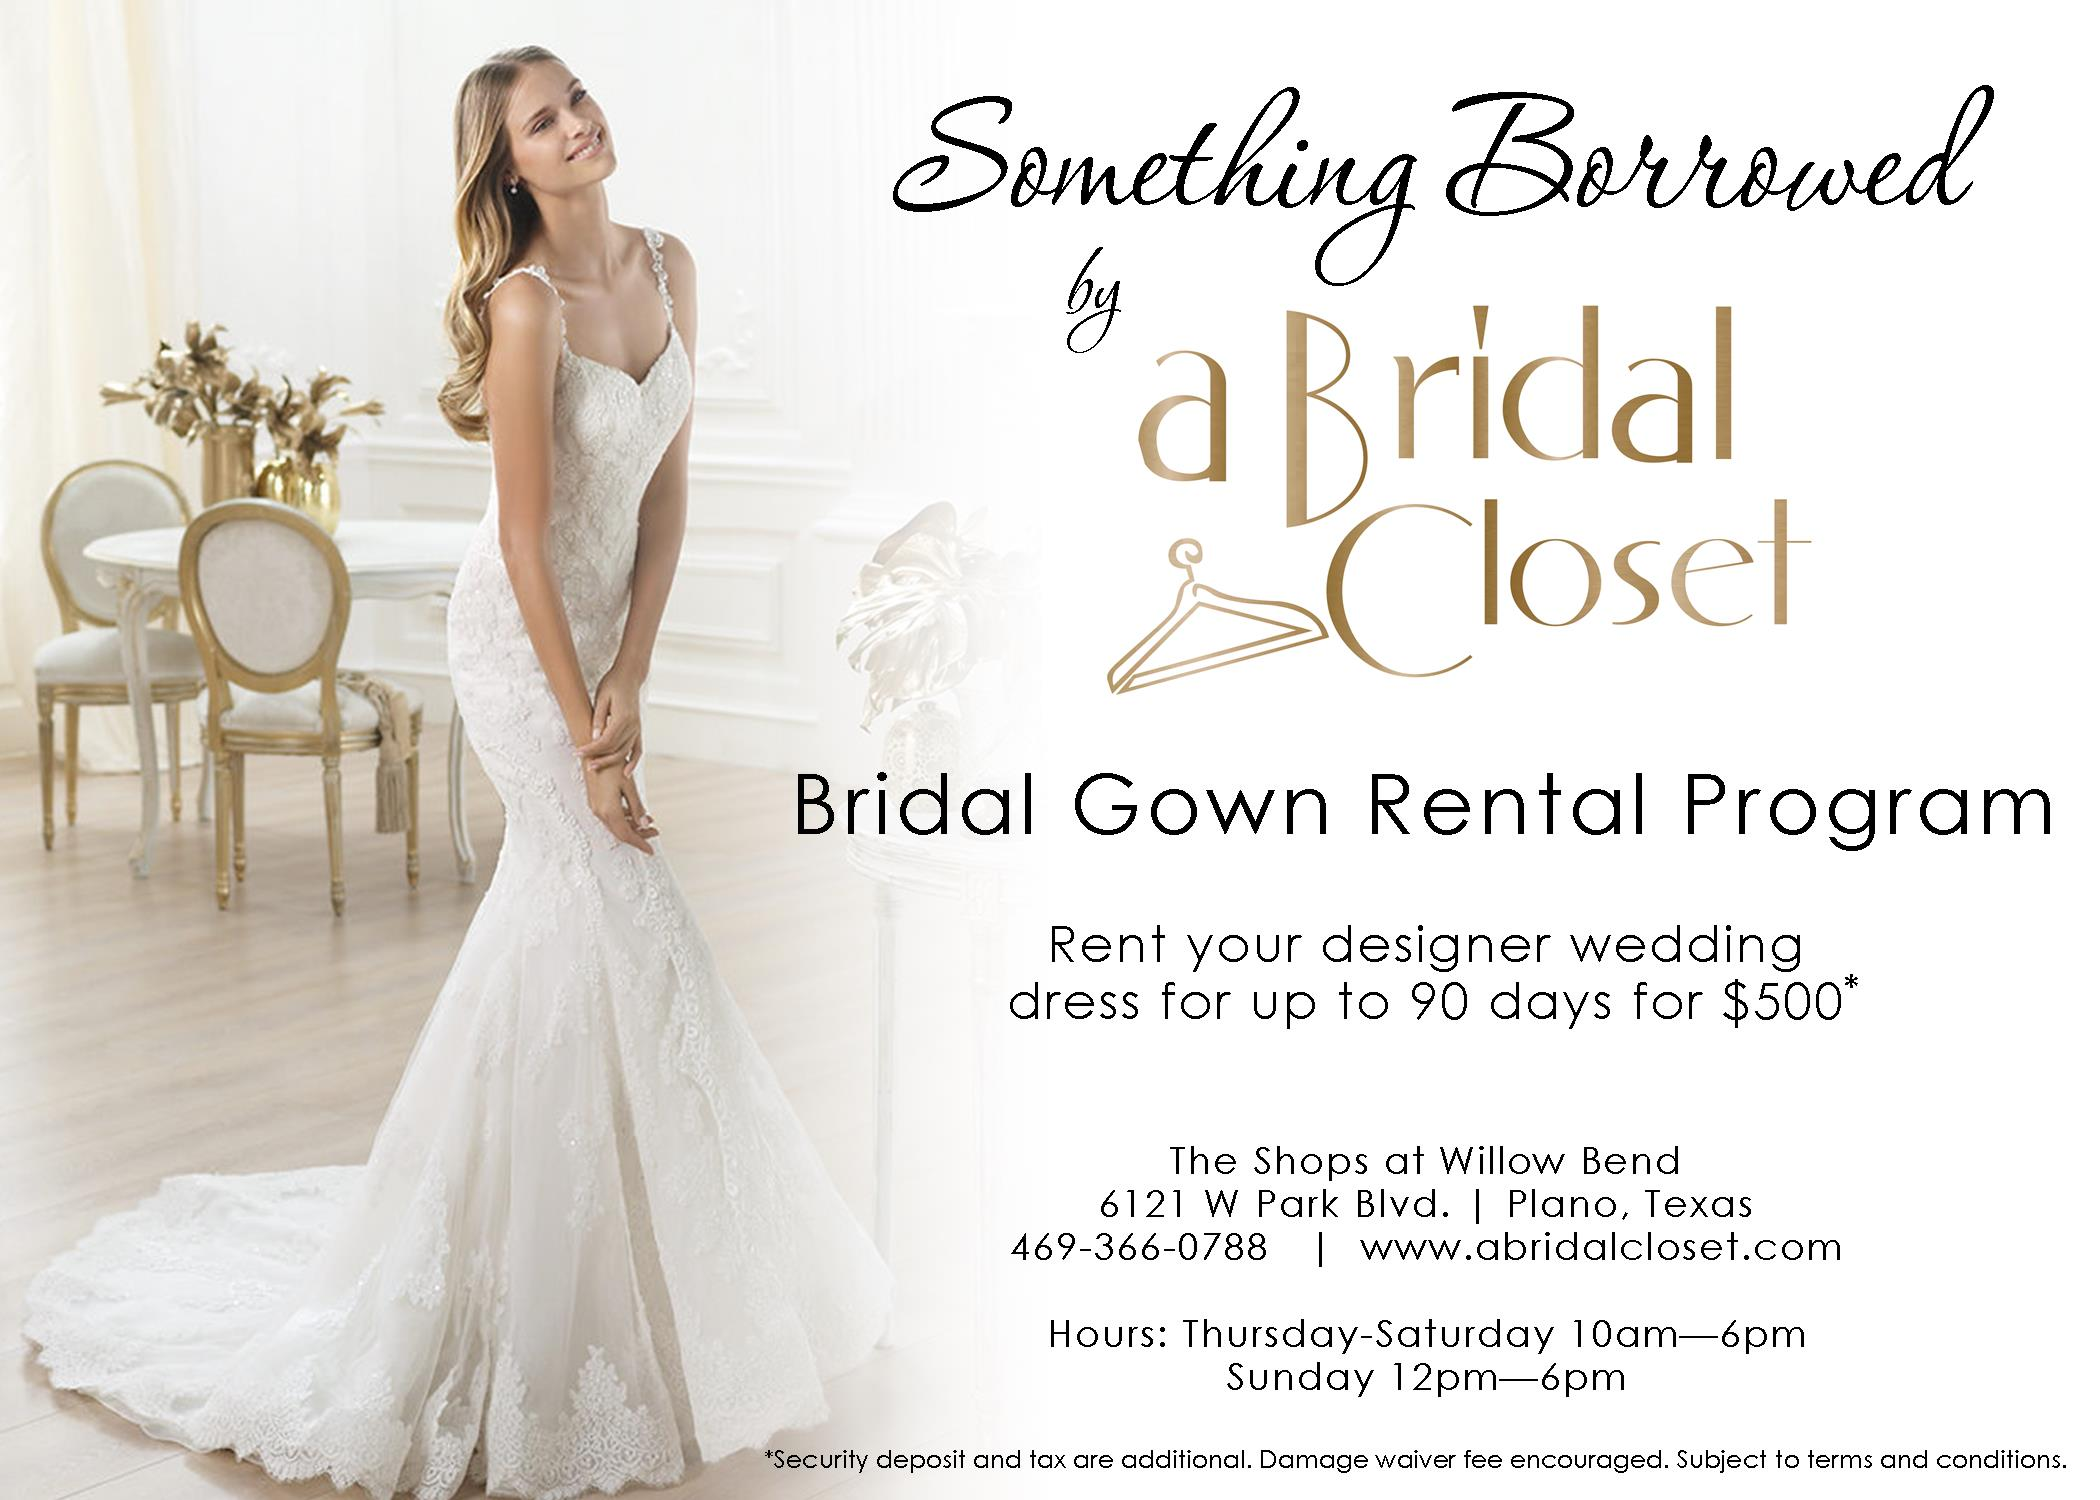 Dallas bridal outlet a bridal closet click here to learn more about our bridal gown rental program junglespirit Images